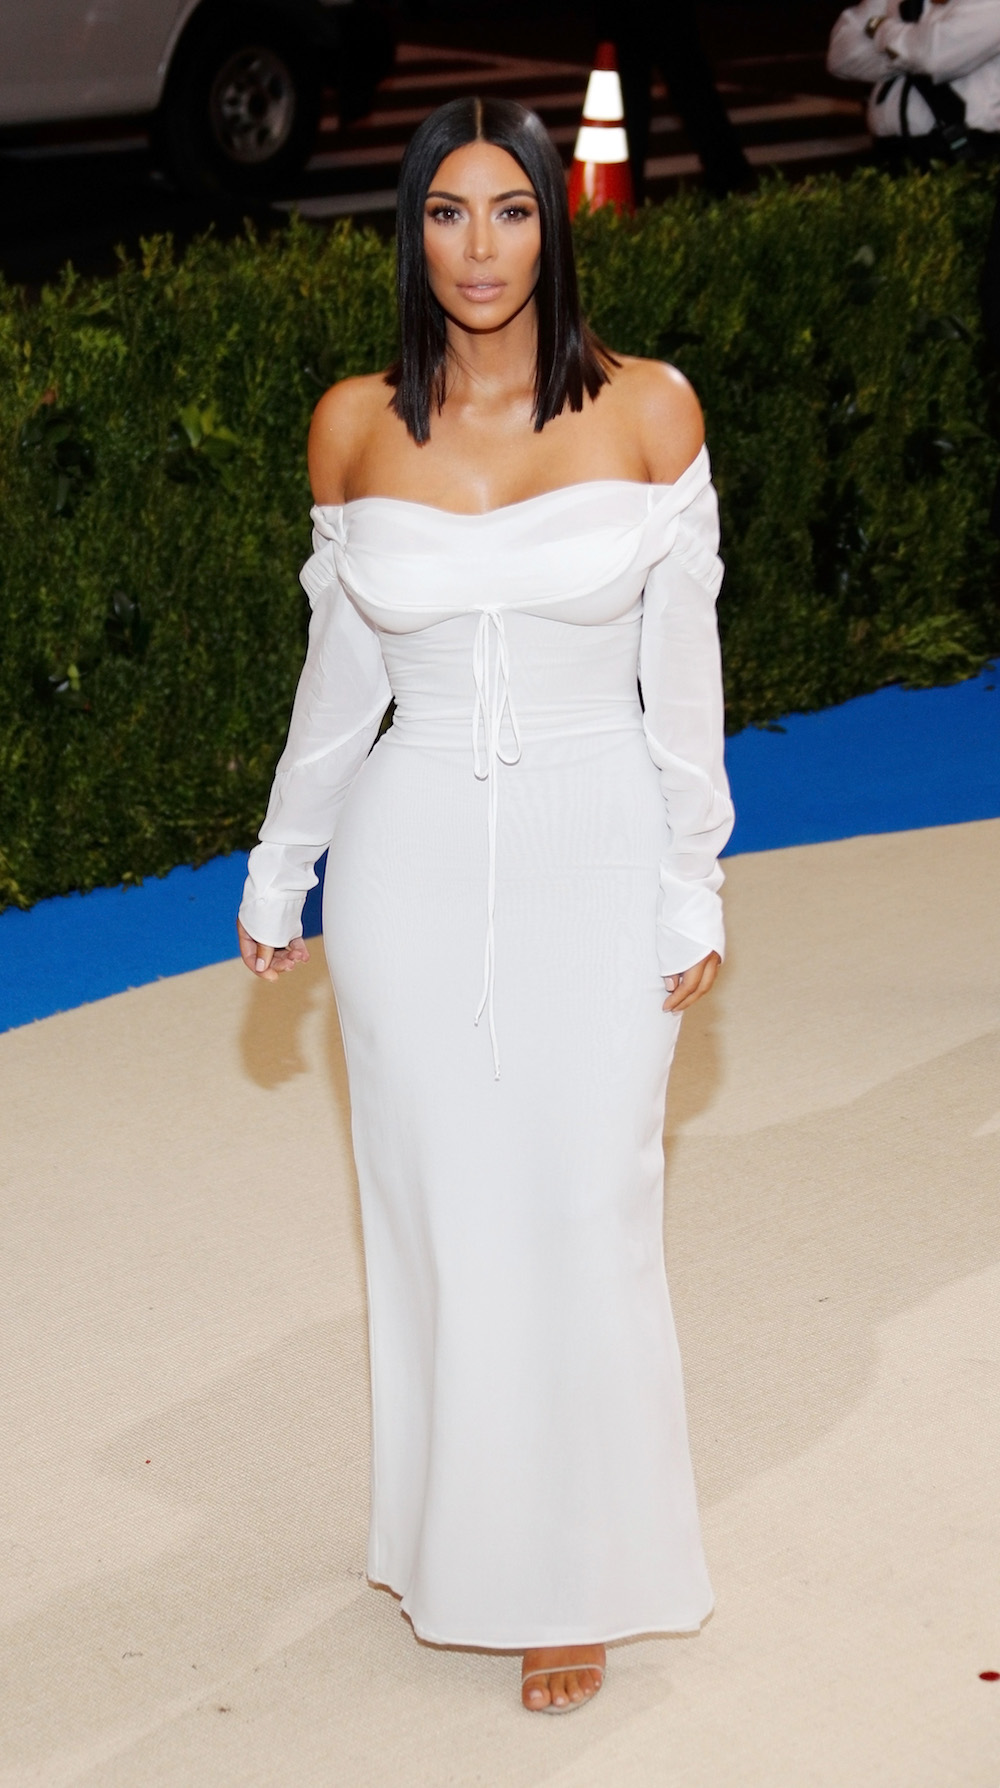 NEW YORK, NY - MAY 01:  Kim Kardashian attends 'Rei Kawakubo/Comme des Garçons:Art of the In-Between' Costume Institute Gala at Metropolitan Museum of Art on May 1, 2017 in New York City.  (Photo by Jackson Lee/FilmMagic)